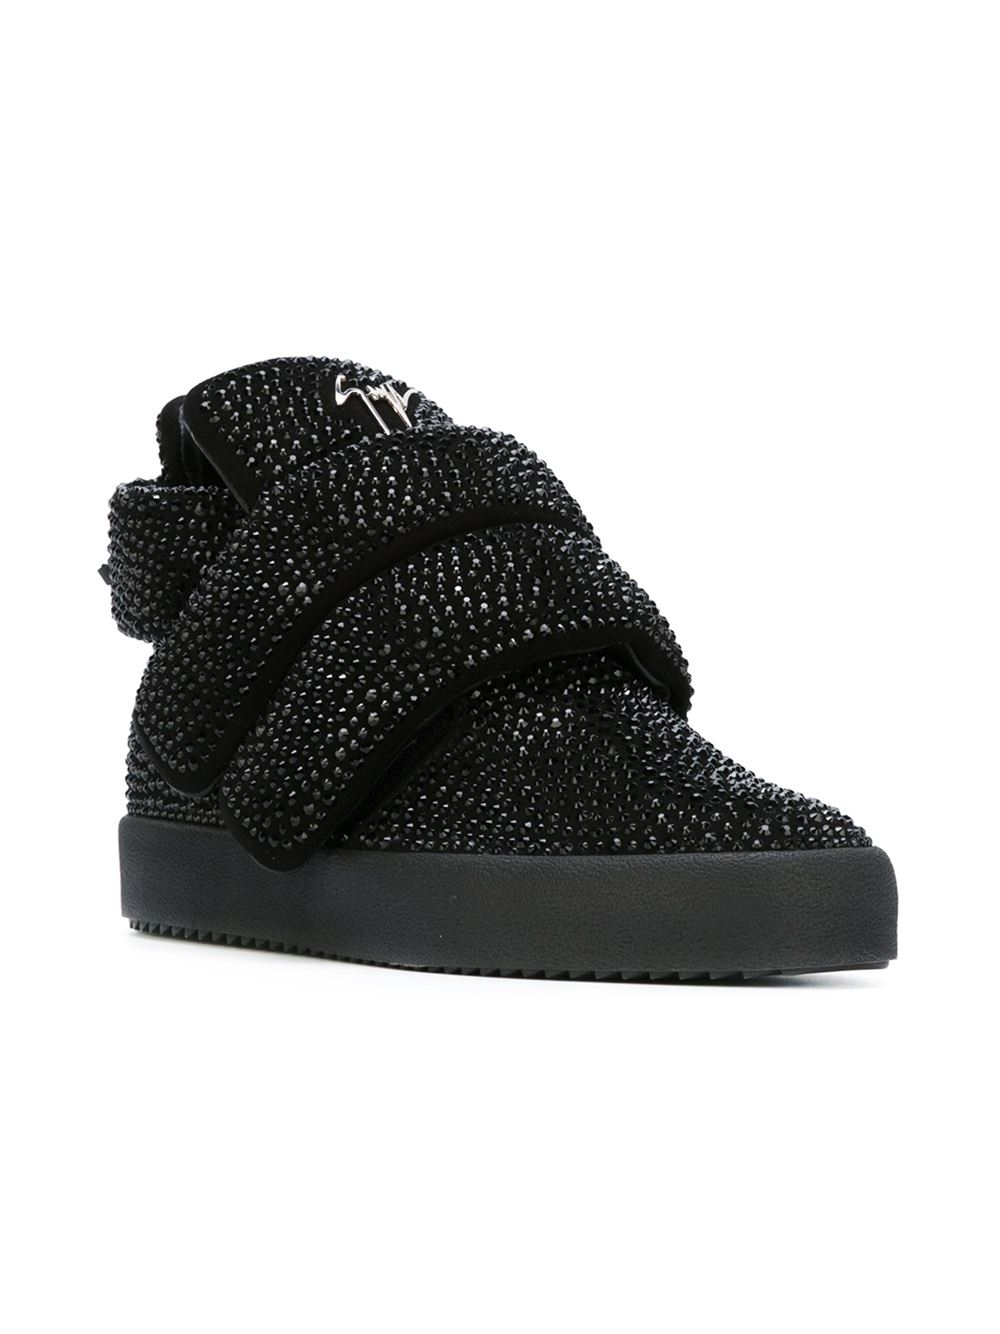 e0c4eab1ce110 Lyst - Giuseppe Zanotti Velcro-Strap Suede High-Top Sneakers in ...